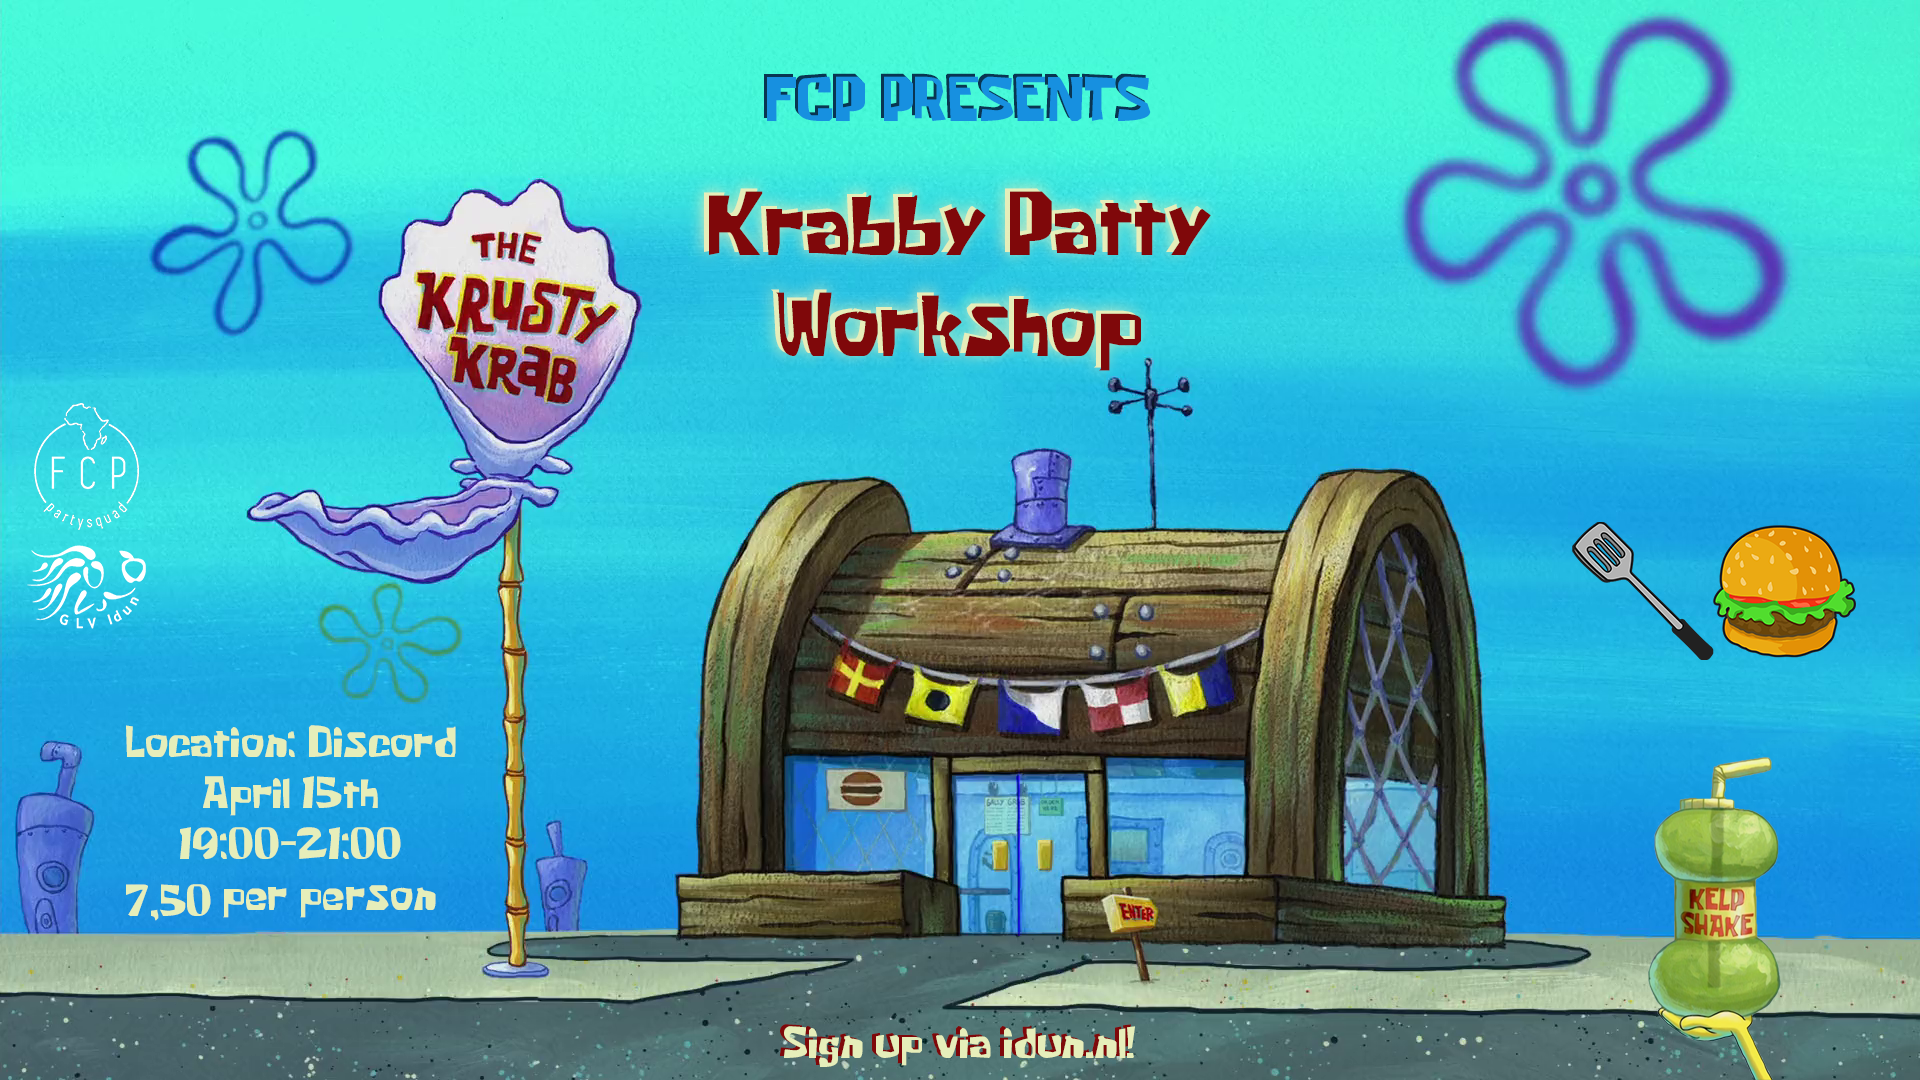 Krabby Patty Workshop